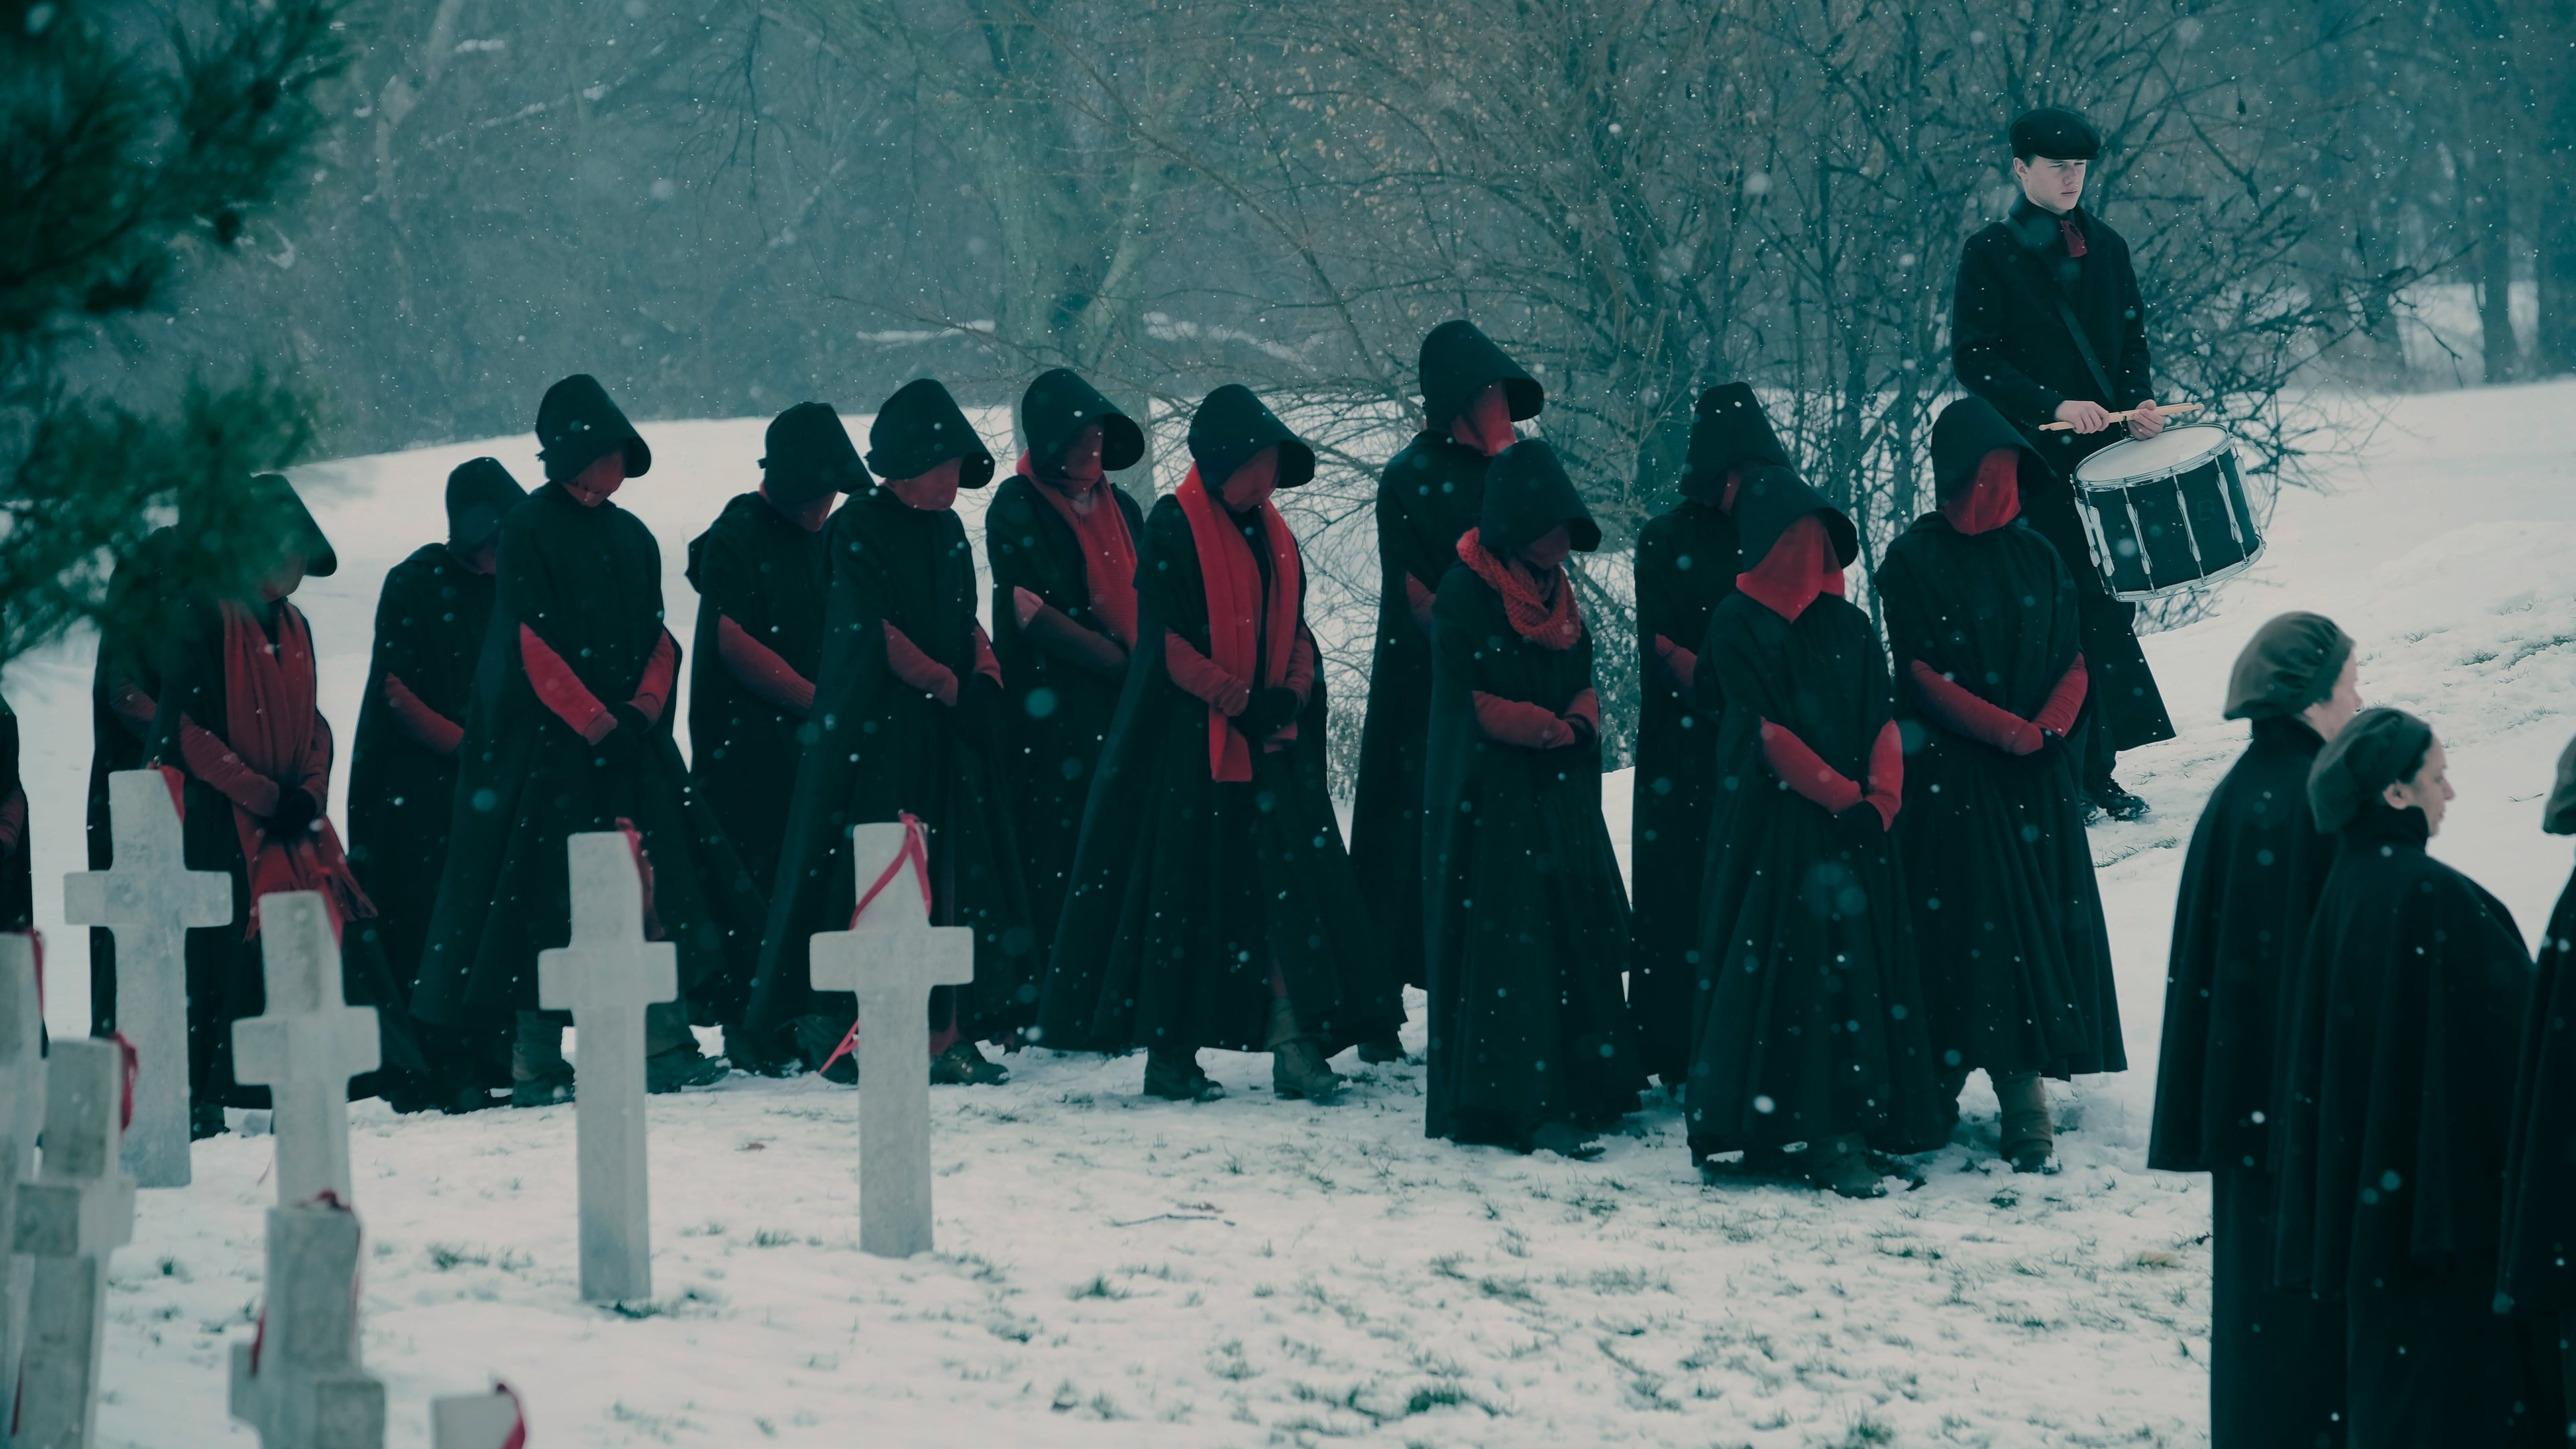 The Handmaid's Tale - Season 2 Episode 1 : June